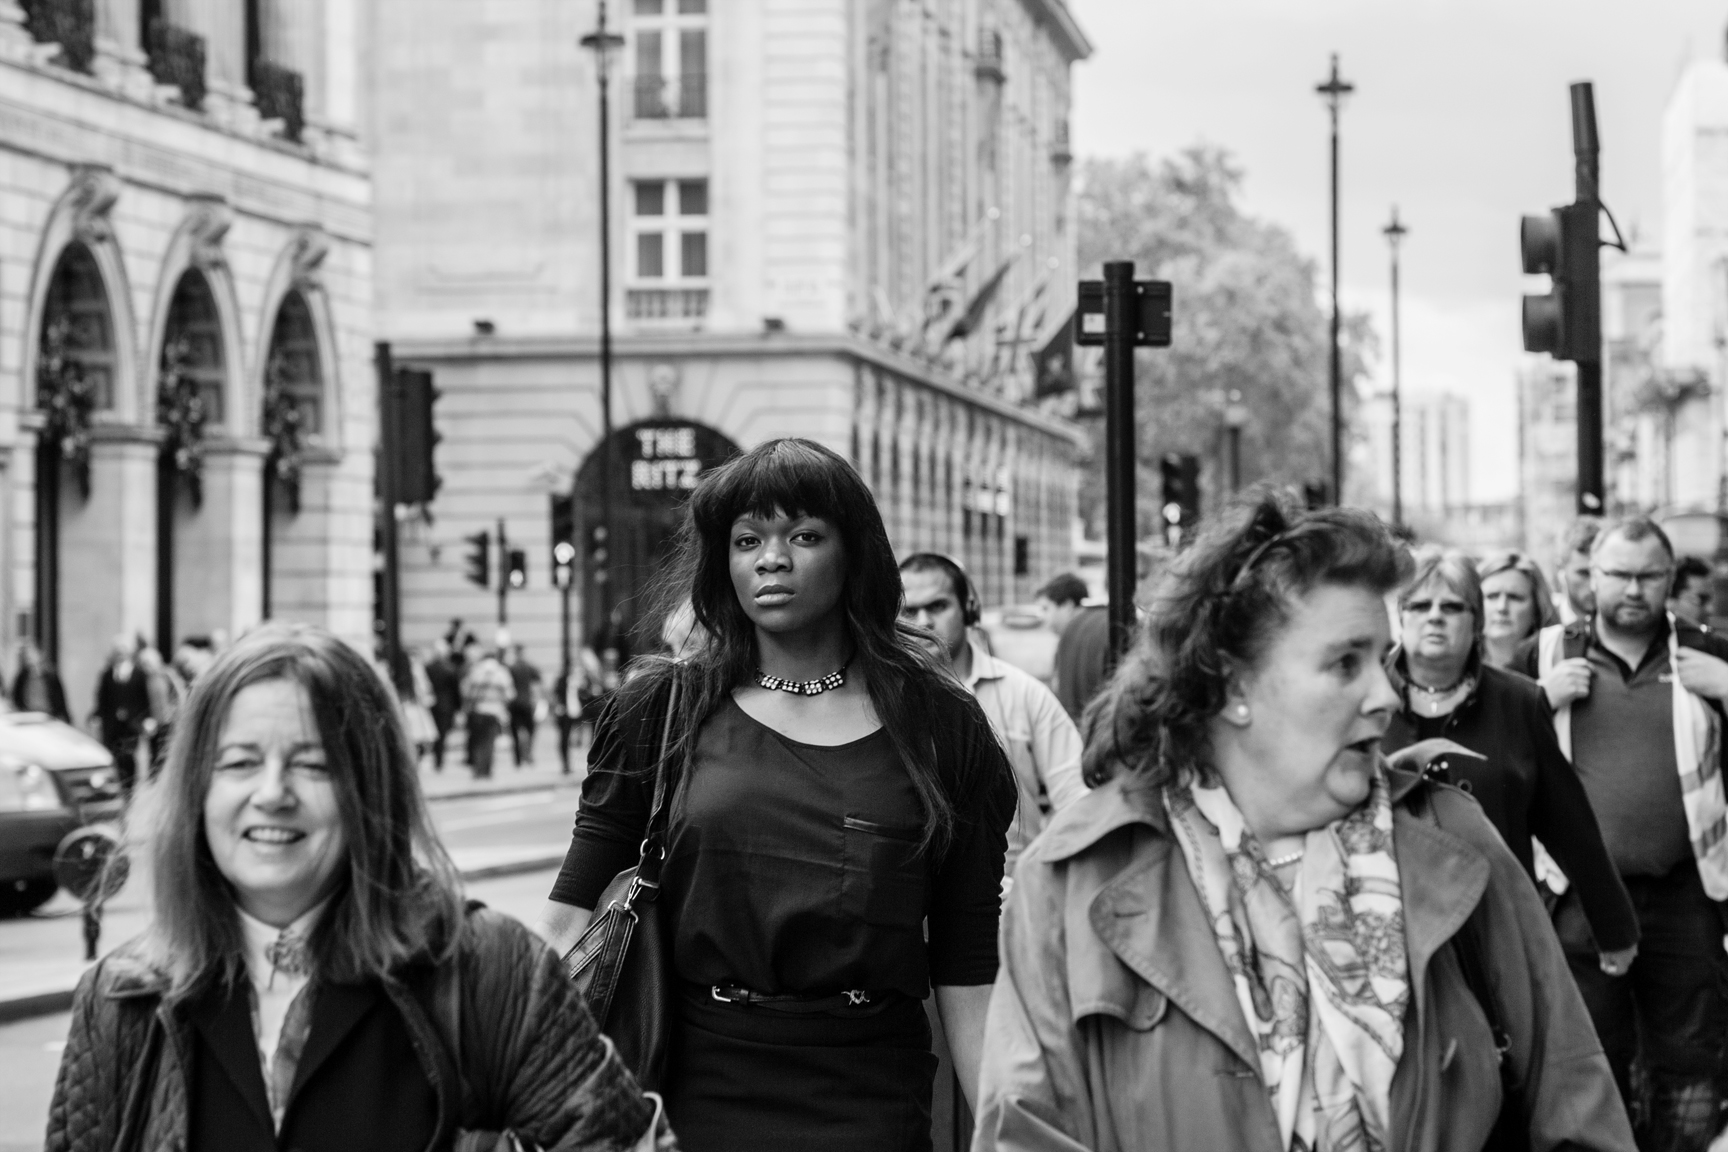 Candid street photography London